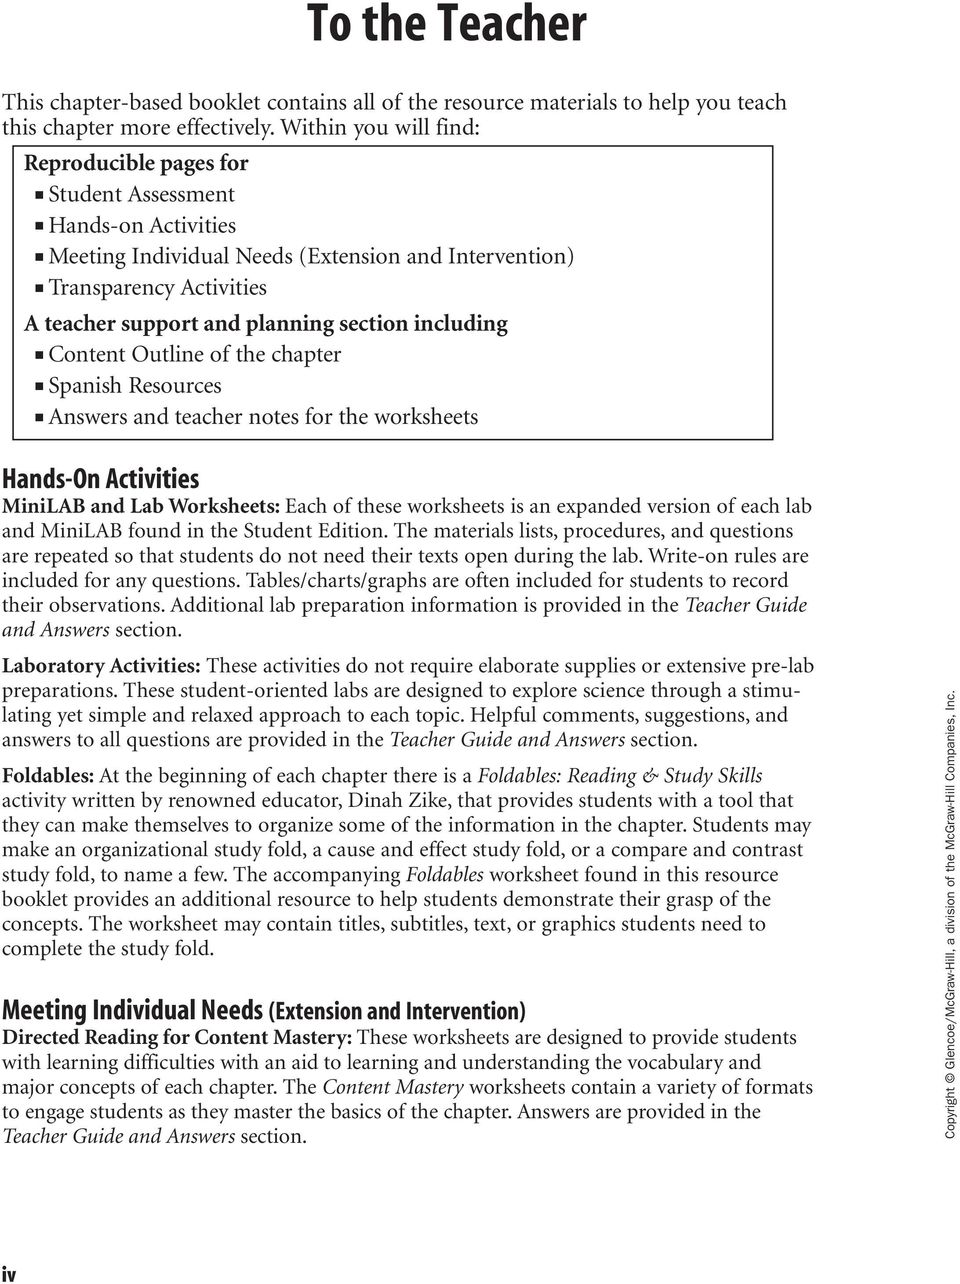 Skills worksheet vocabulary review chemistry of life